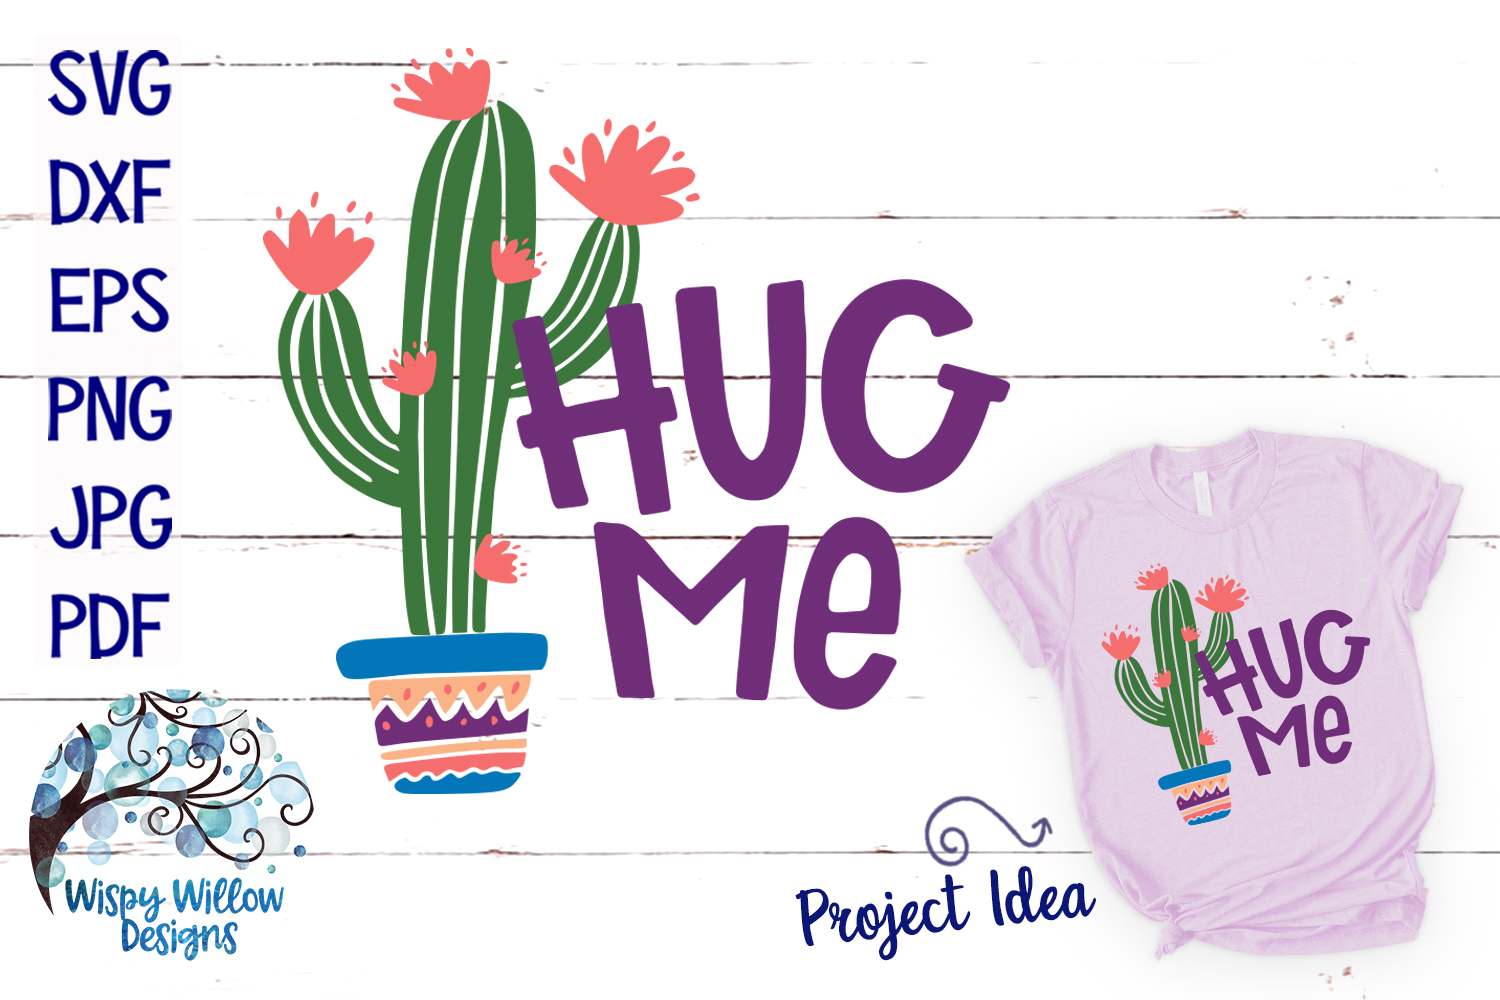 Download Free Hug Me Cactus Svg Graphic By Wispywillowdesigns Creative Fabrica for Cricut Explore, Silhouette and other cutting machines.